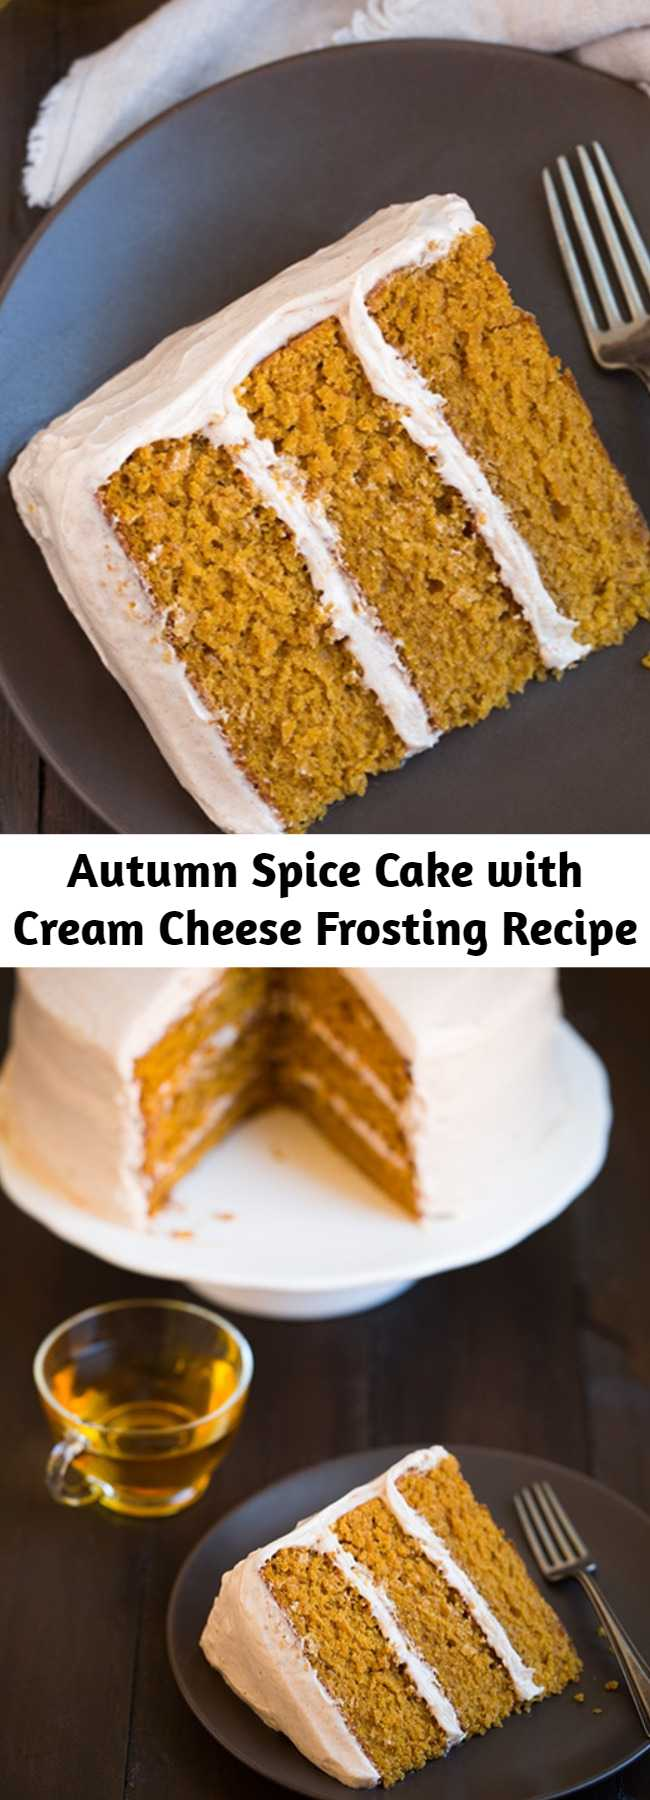 Autumn Spice Cake with Cream Cheese Frosting Recipe - This is one of my all time favorite fall cakes! It's perfectly moist and brimming with lots of those sweet autumn spices. It has a tender crumb and so much flavor in every bite. No one can resist a slice!